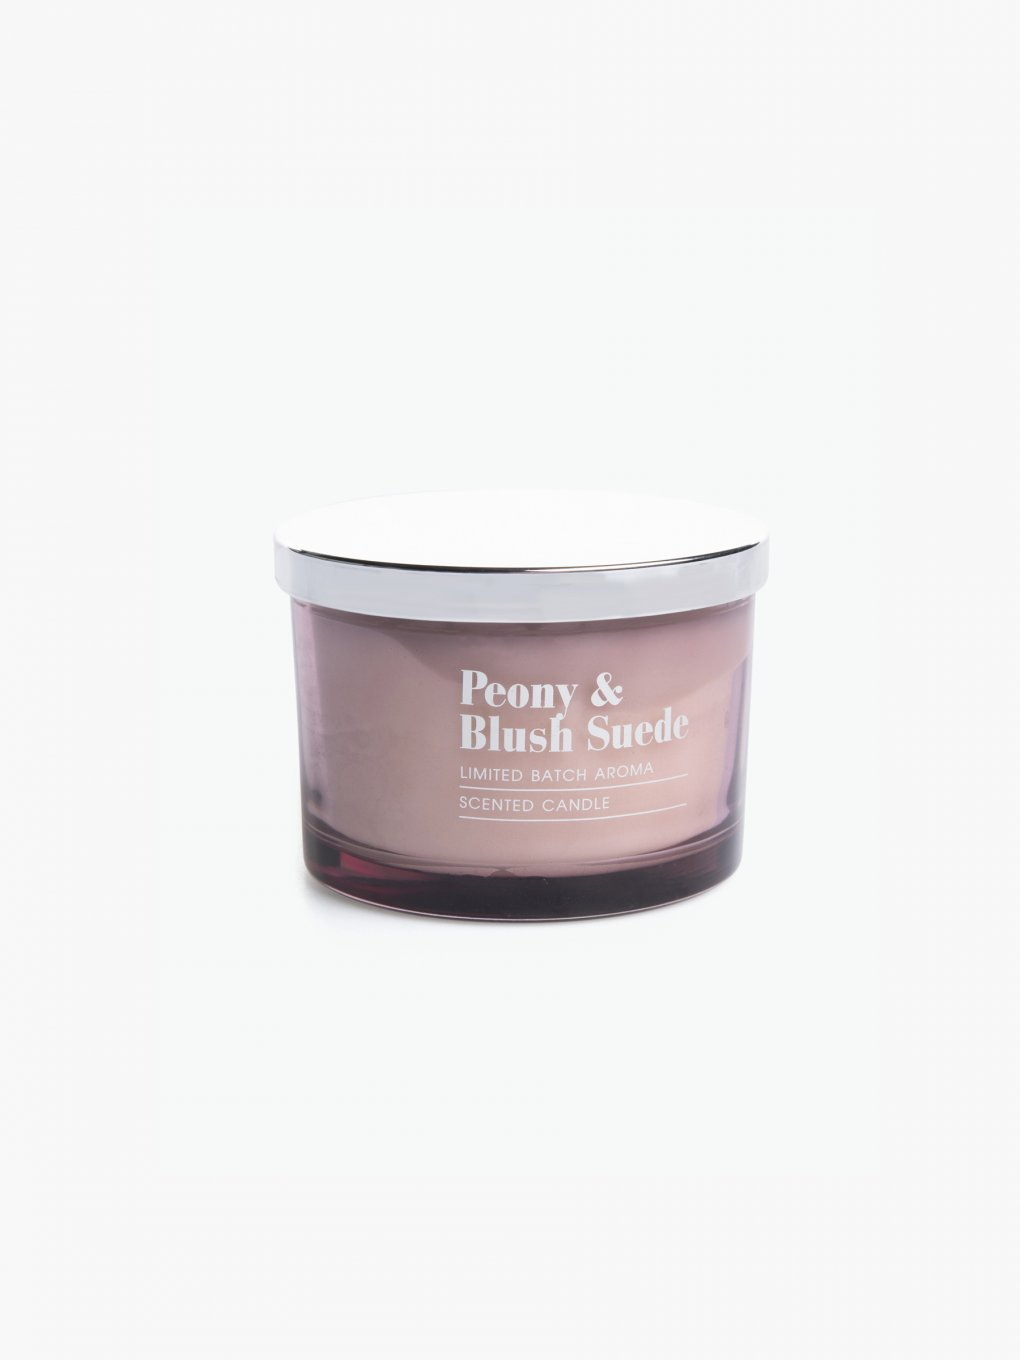 Peony and blush suede scented candle